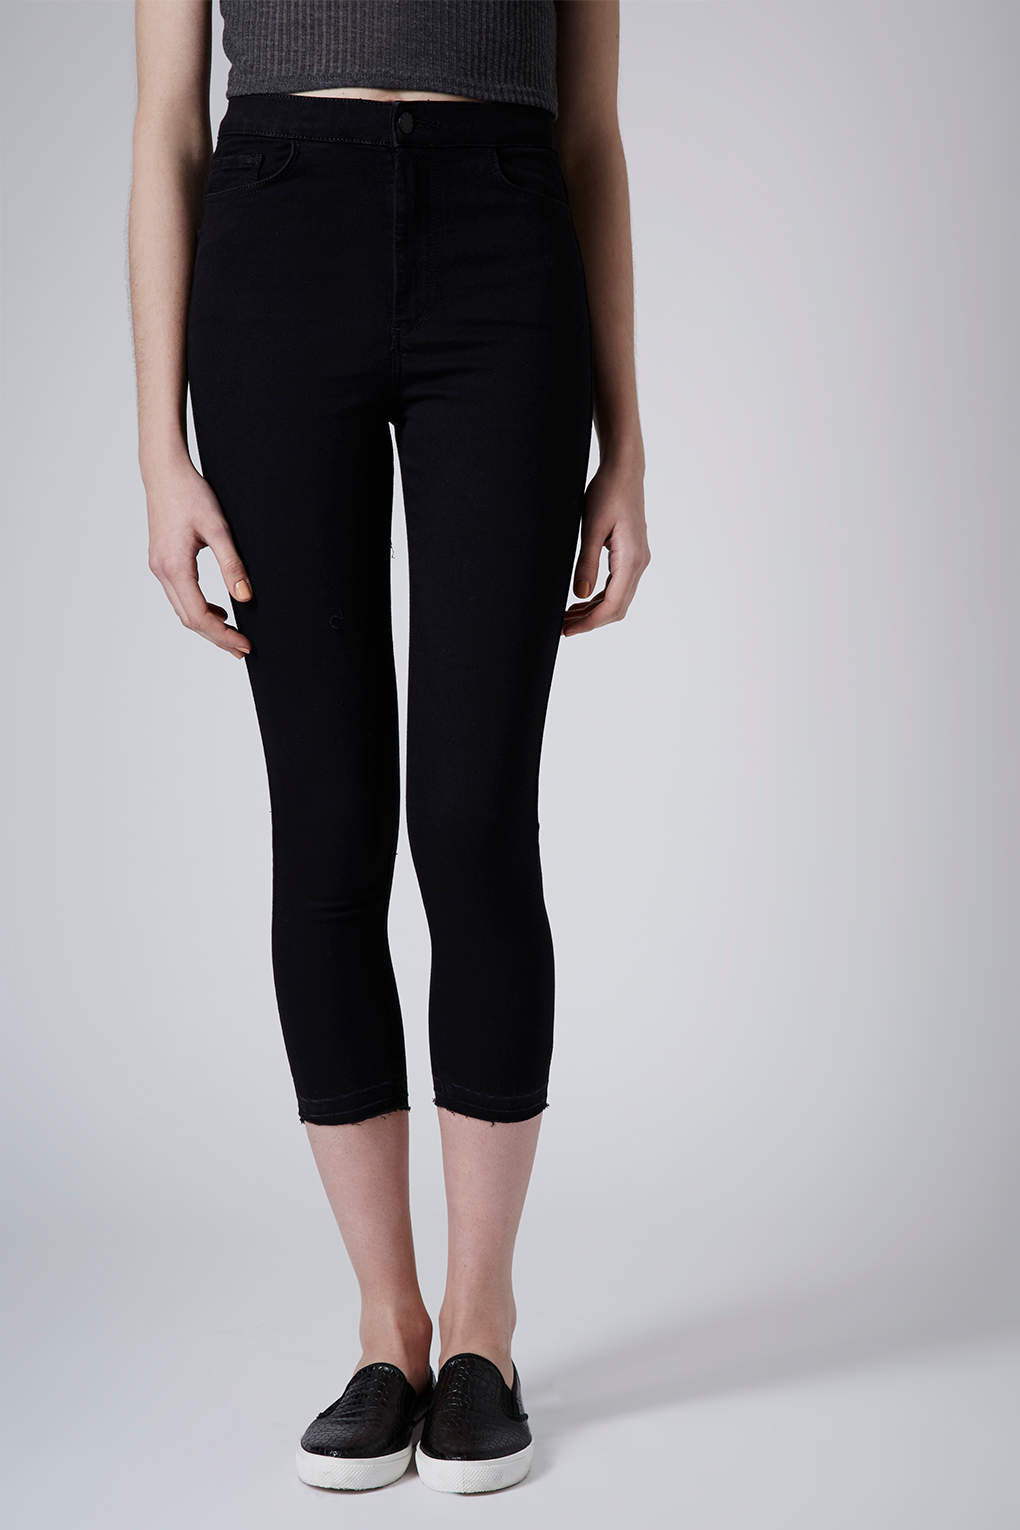 Topshop Moto Black Cropped Joni Jeans in Black | Lyst